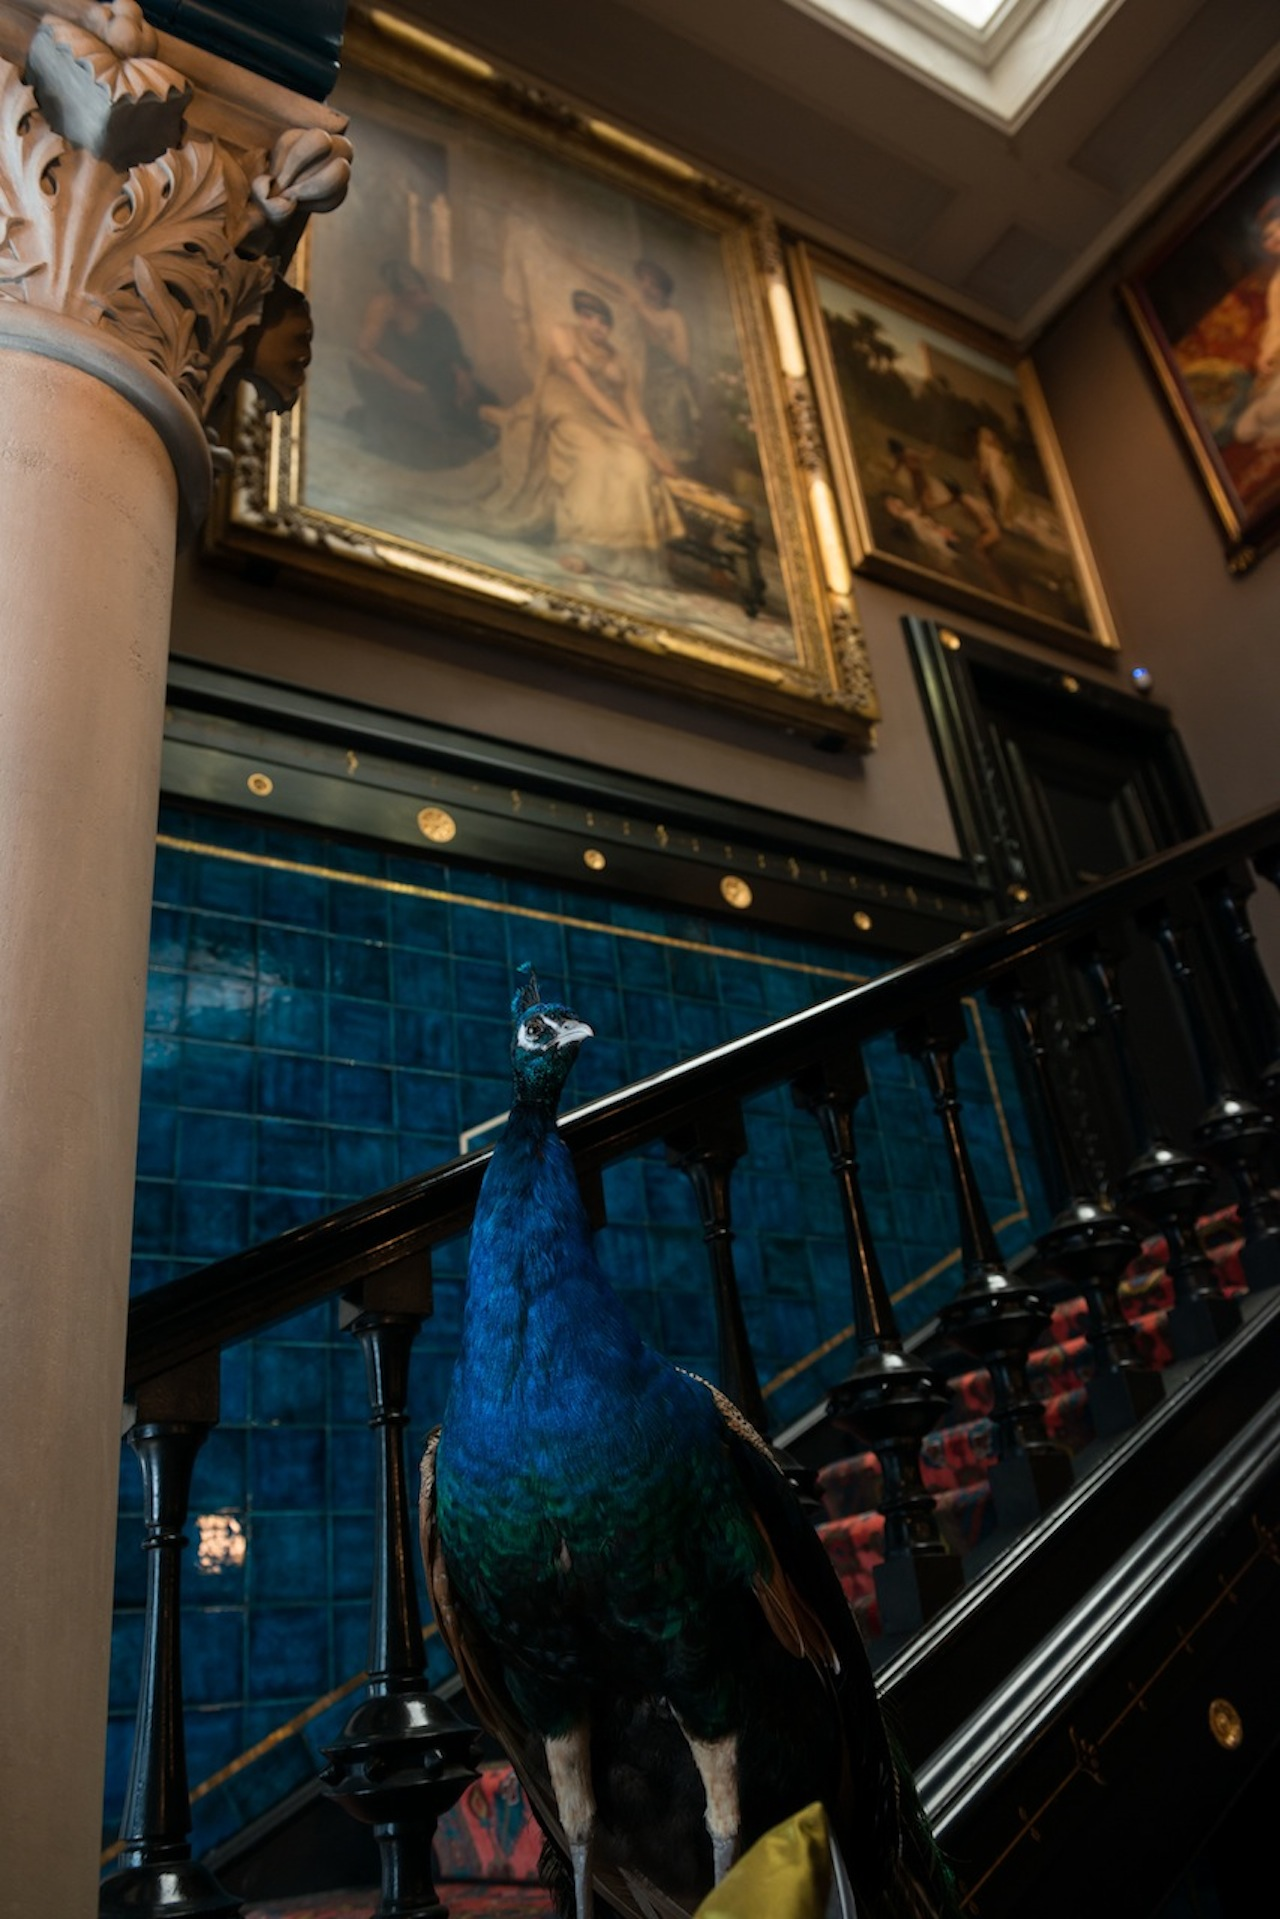 'A Victorian Obsession: The Pérez Simón Collection,' installation view of staircase, Leighton House Museum (photo by Todd-White Photography) (click to enlarge)